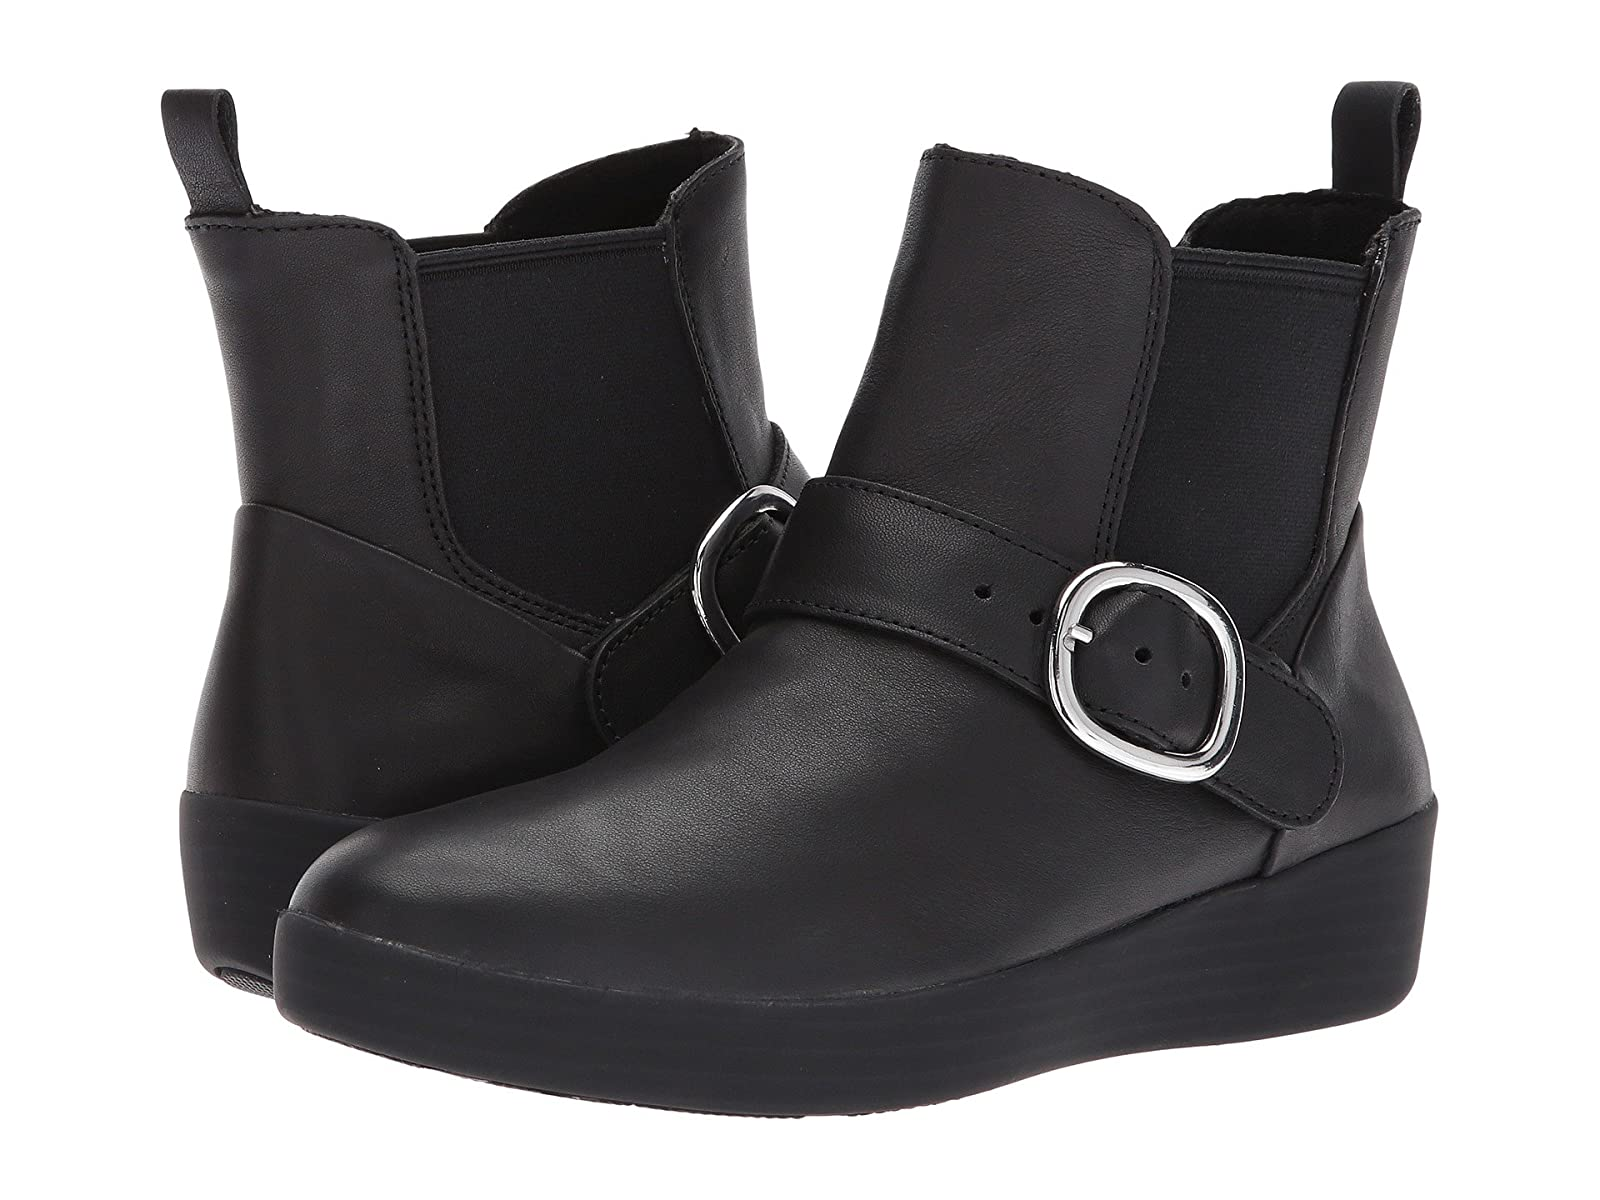 FitFlop Superbuckle Leather Chelsea BootCheap and distinctive eye-catching shoes